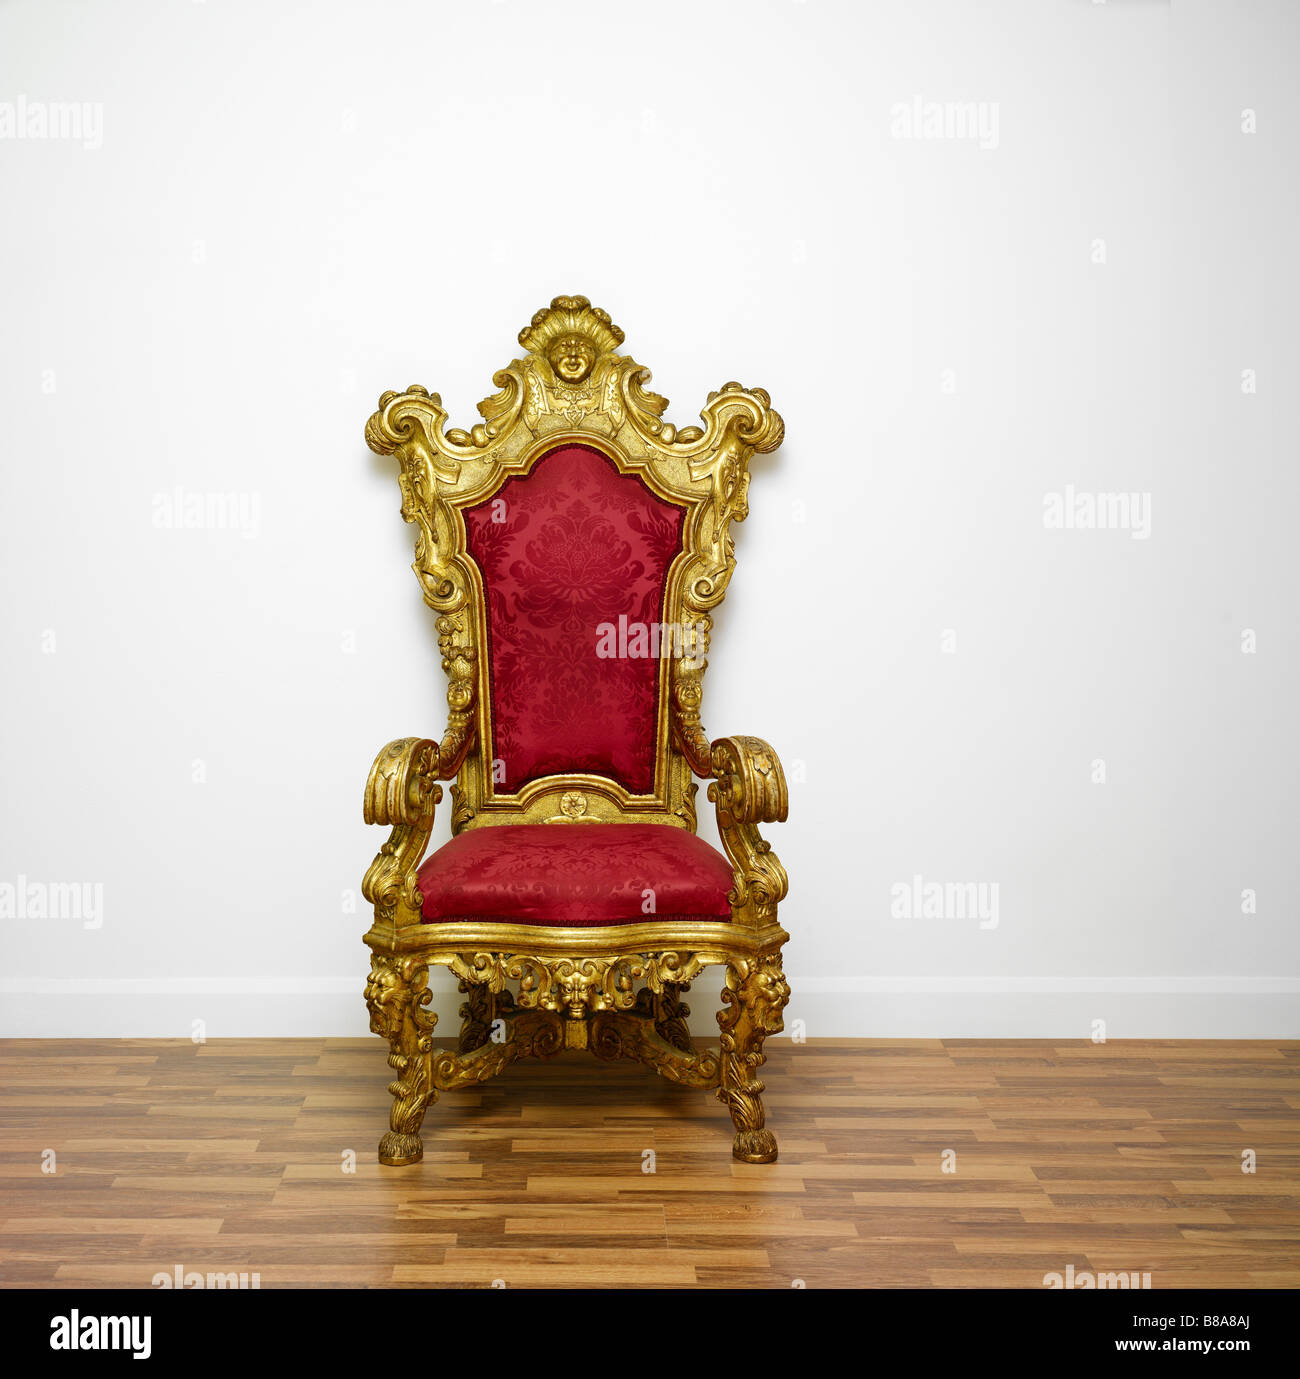 A red and gold throne chair on a white background - Stock Image